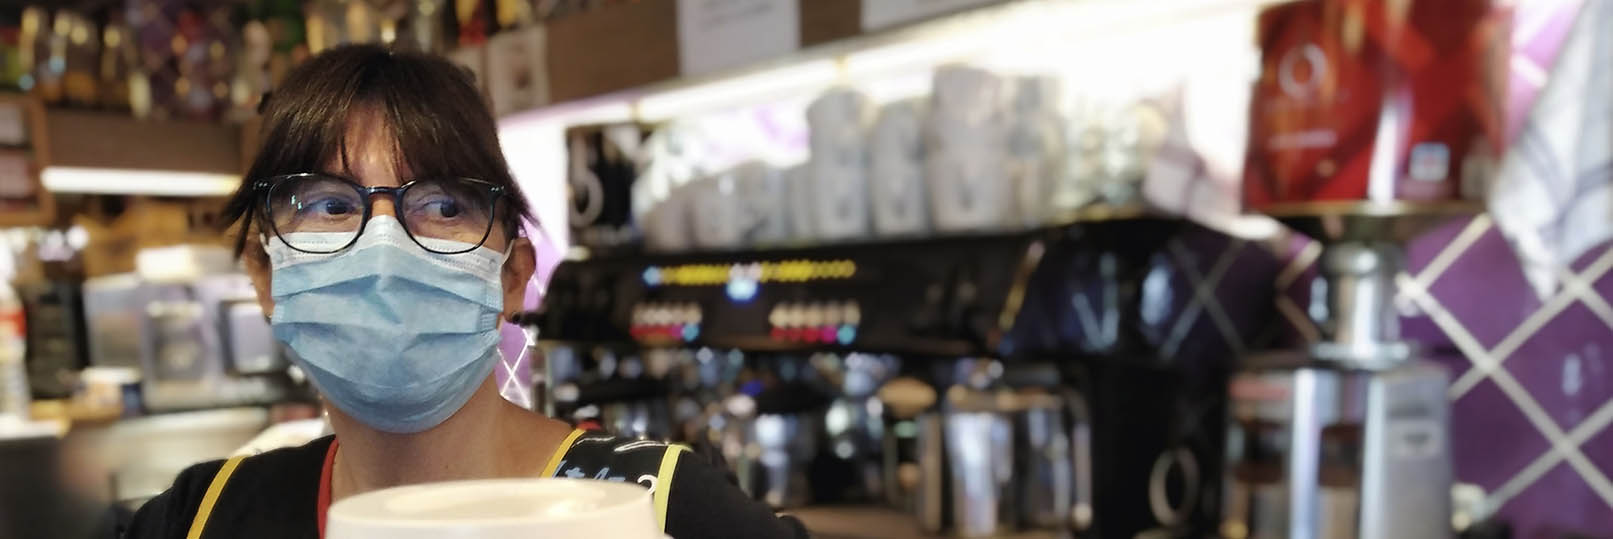 barista in a cafe behind the counter wearing a mask